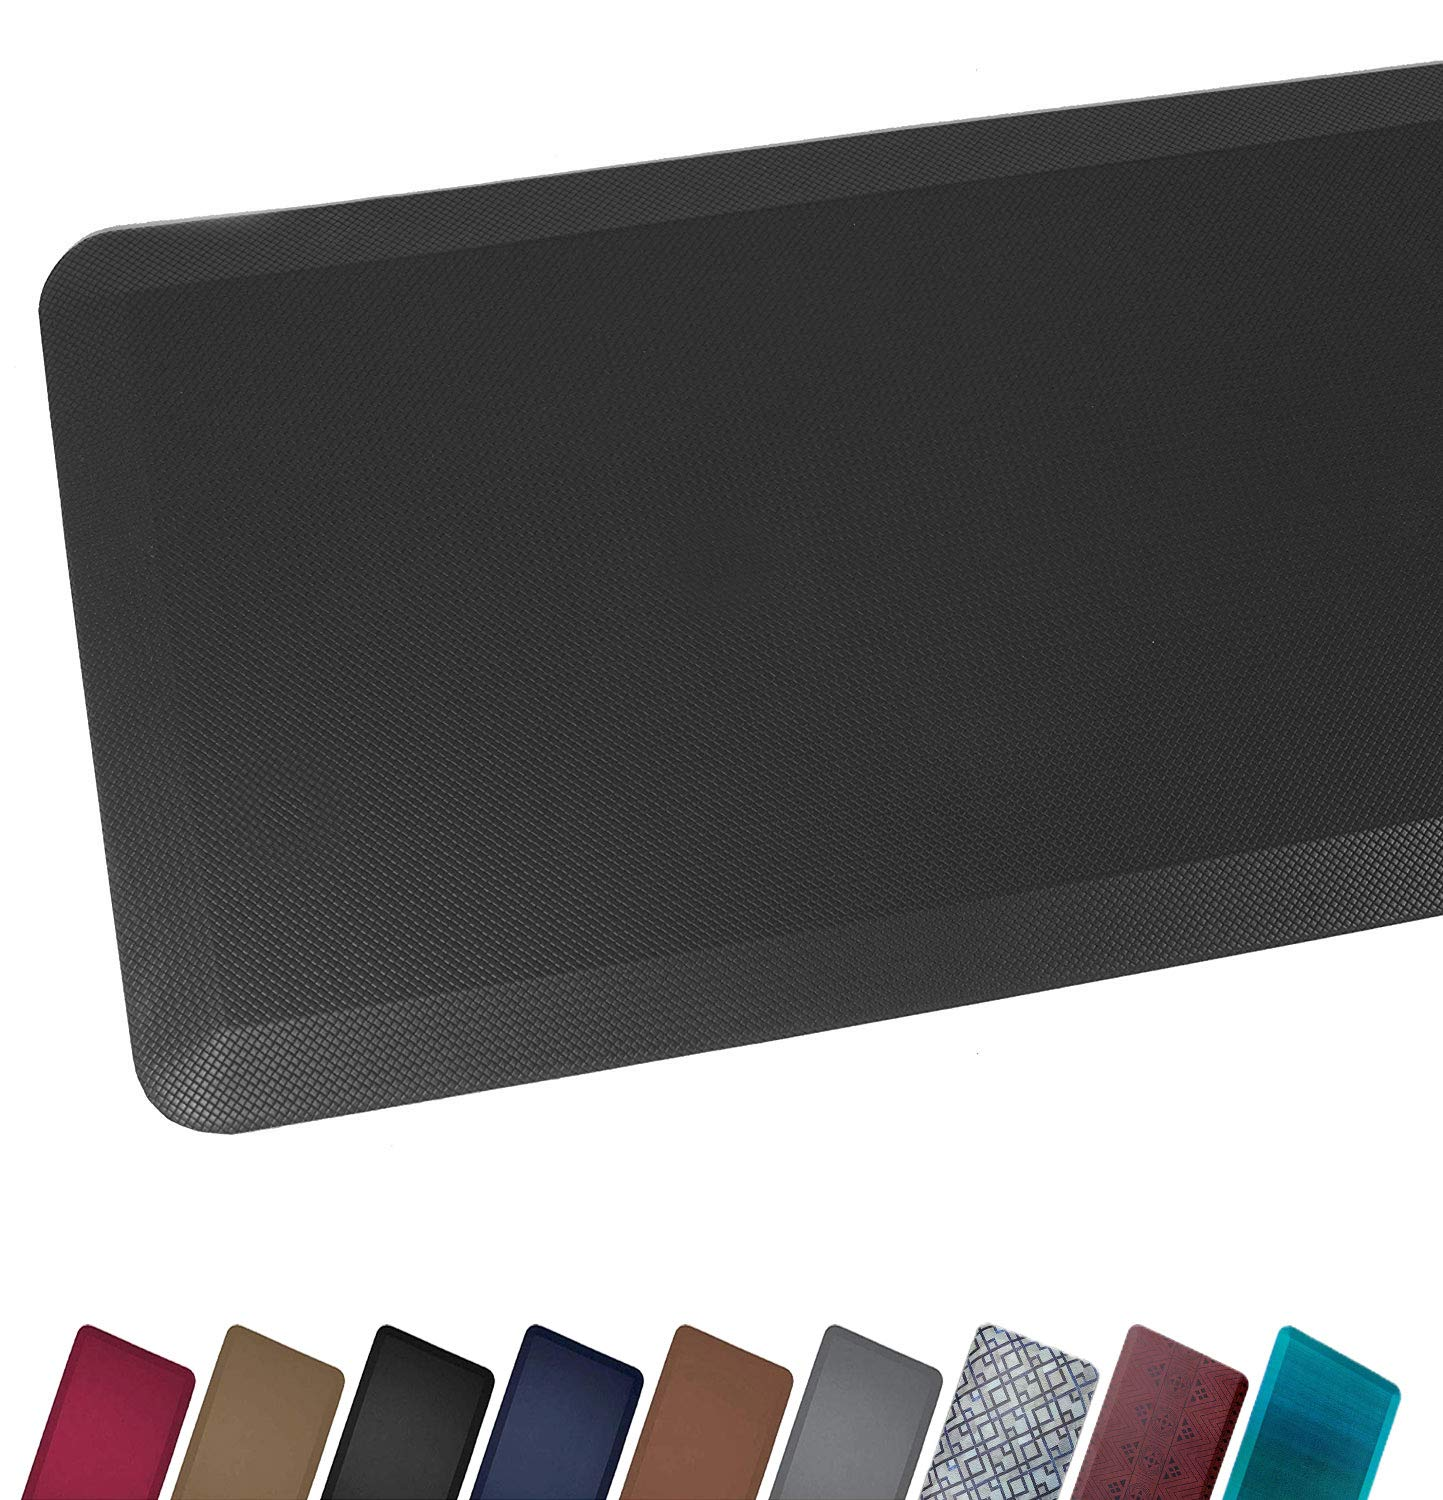 Anti Fatigue Comfort Floor Mat By Sky Mats -Commercial Grade Quality  Perfect for Standup Desks, Kitchens, and Garages - Relieves Foot, Knee, and  Back ...